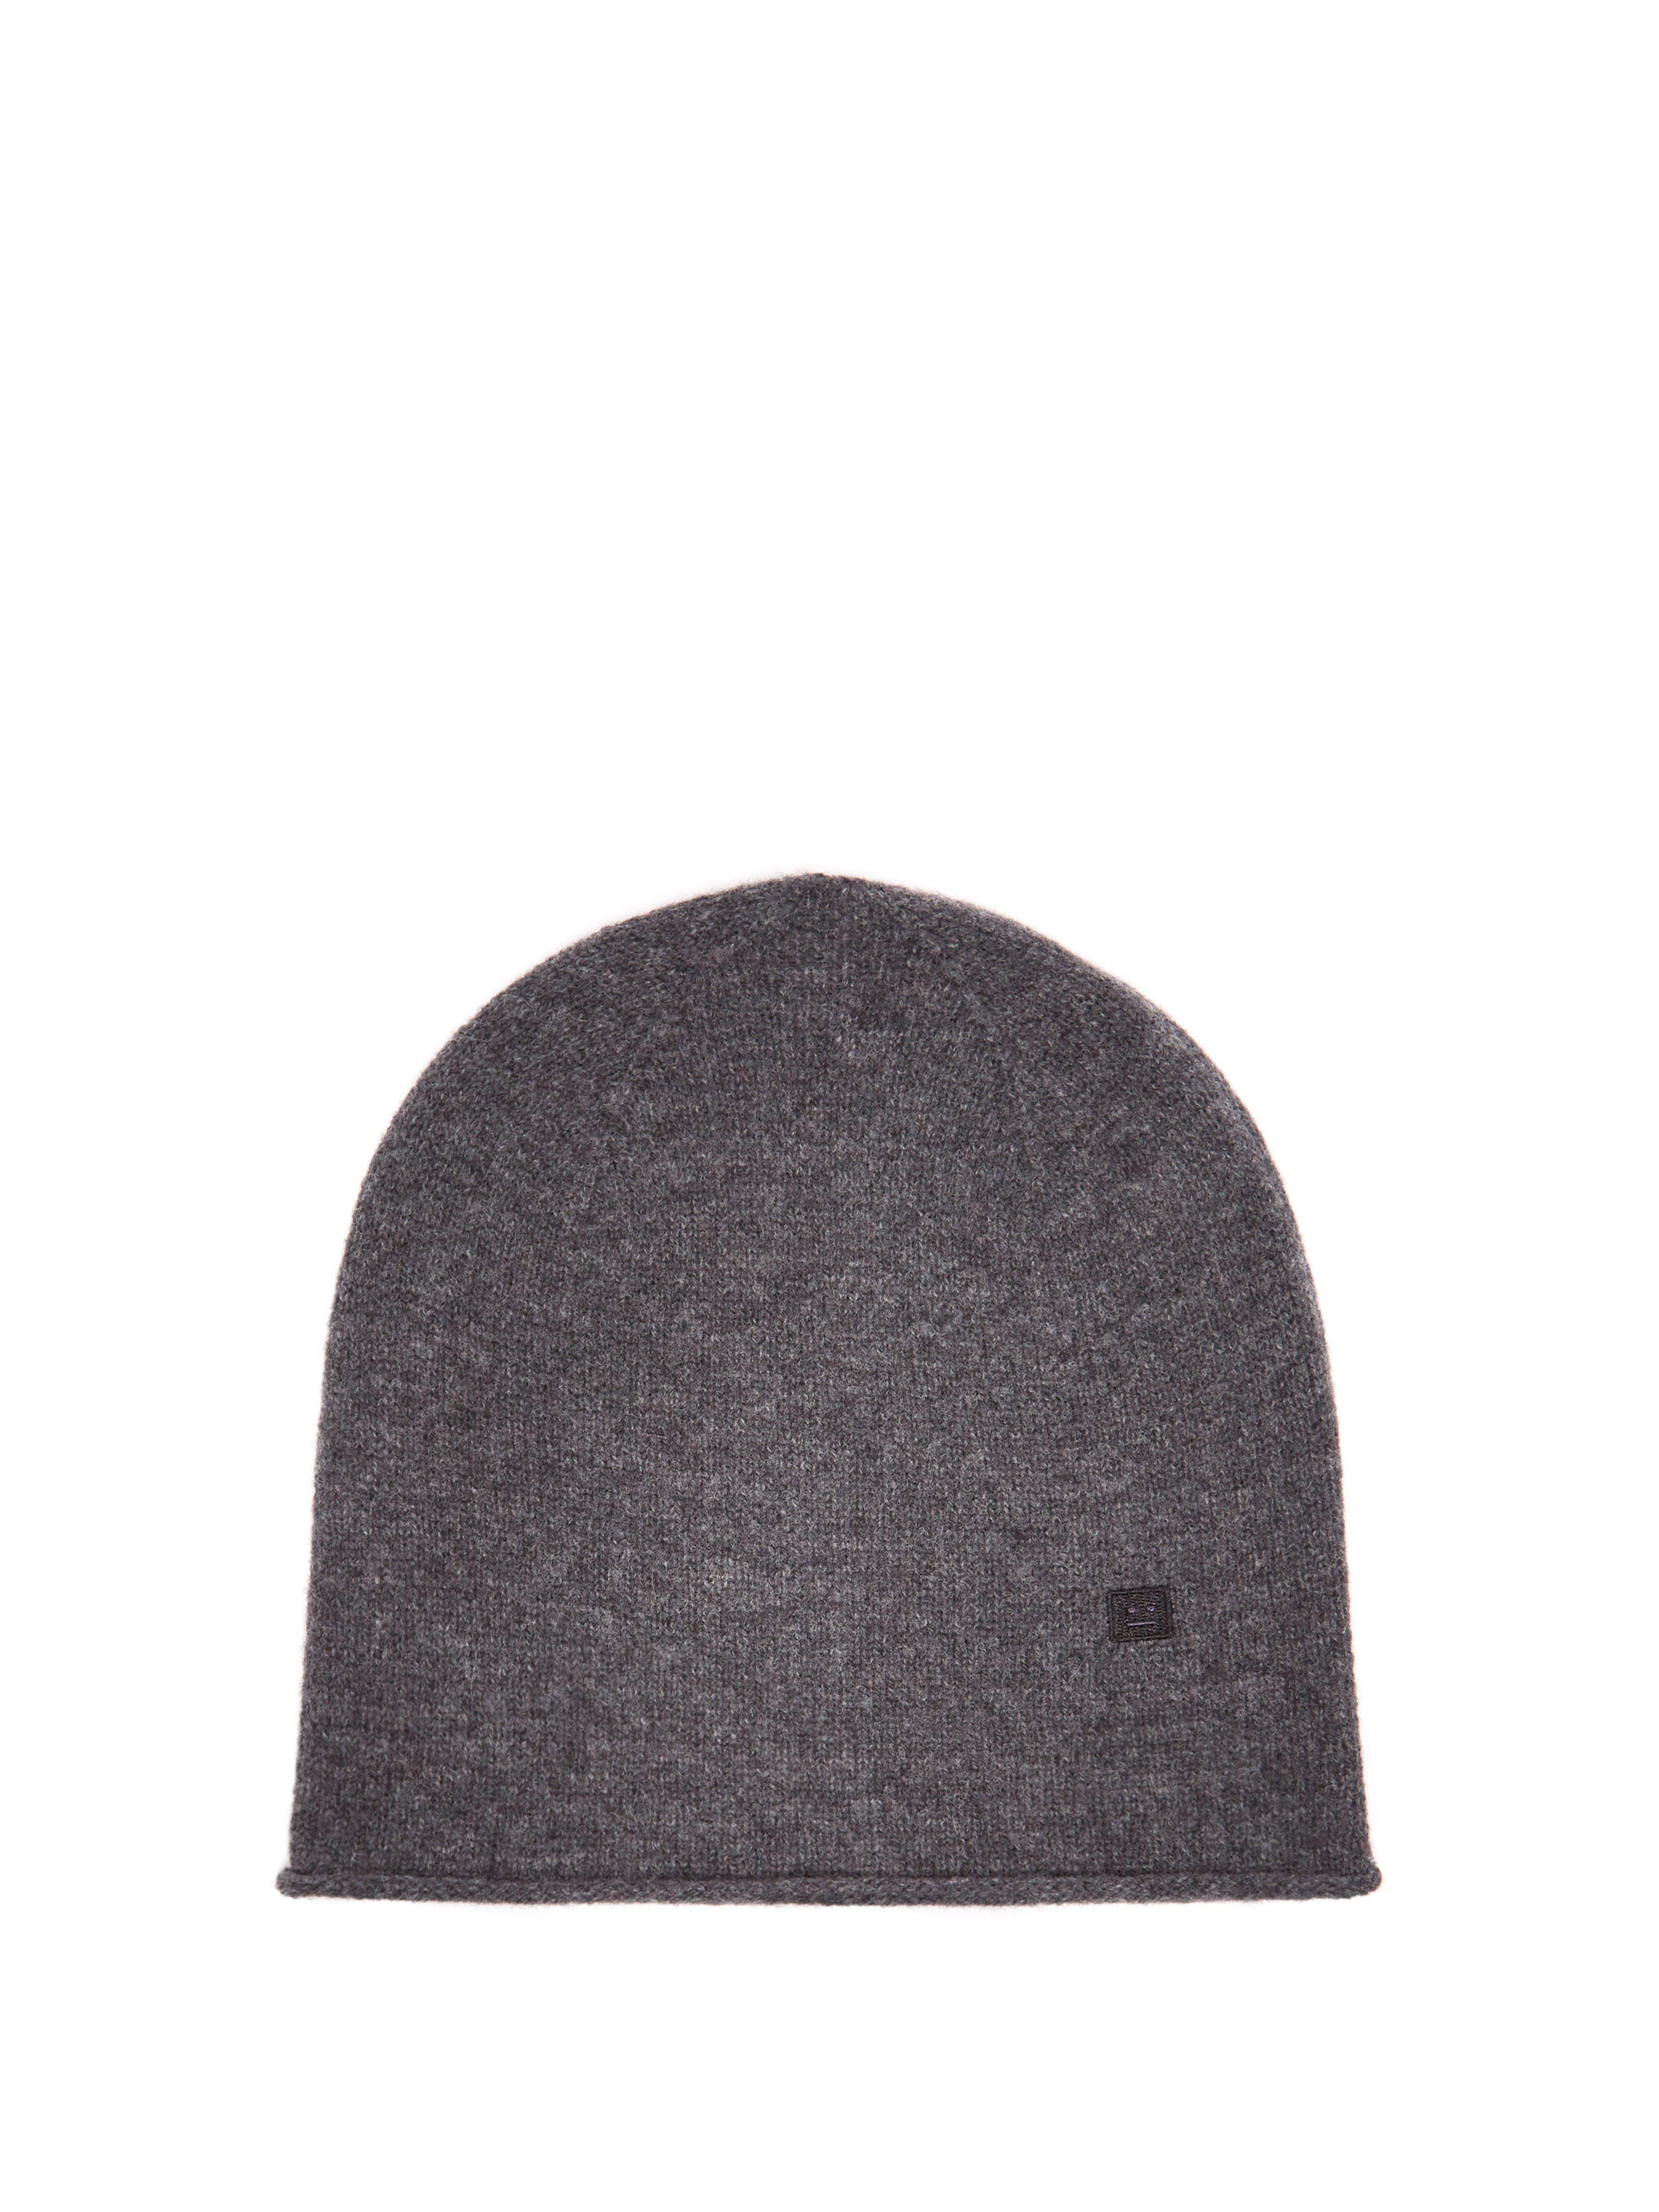 b3fc8a7dba4 Acne Studios Pansy S Face Wool Beanie Hat in Gray - Lyst